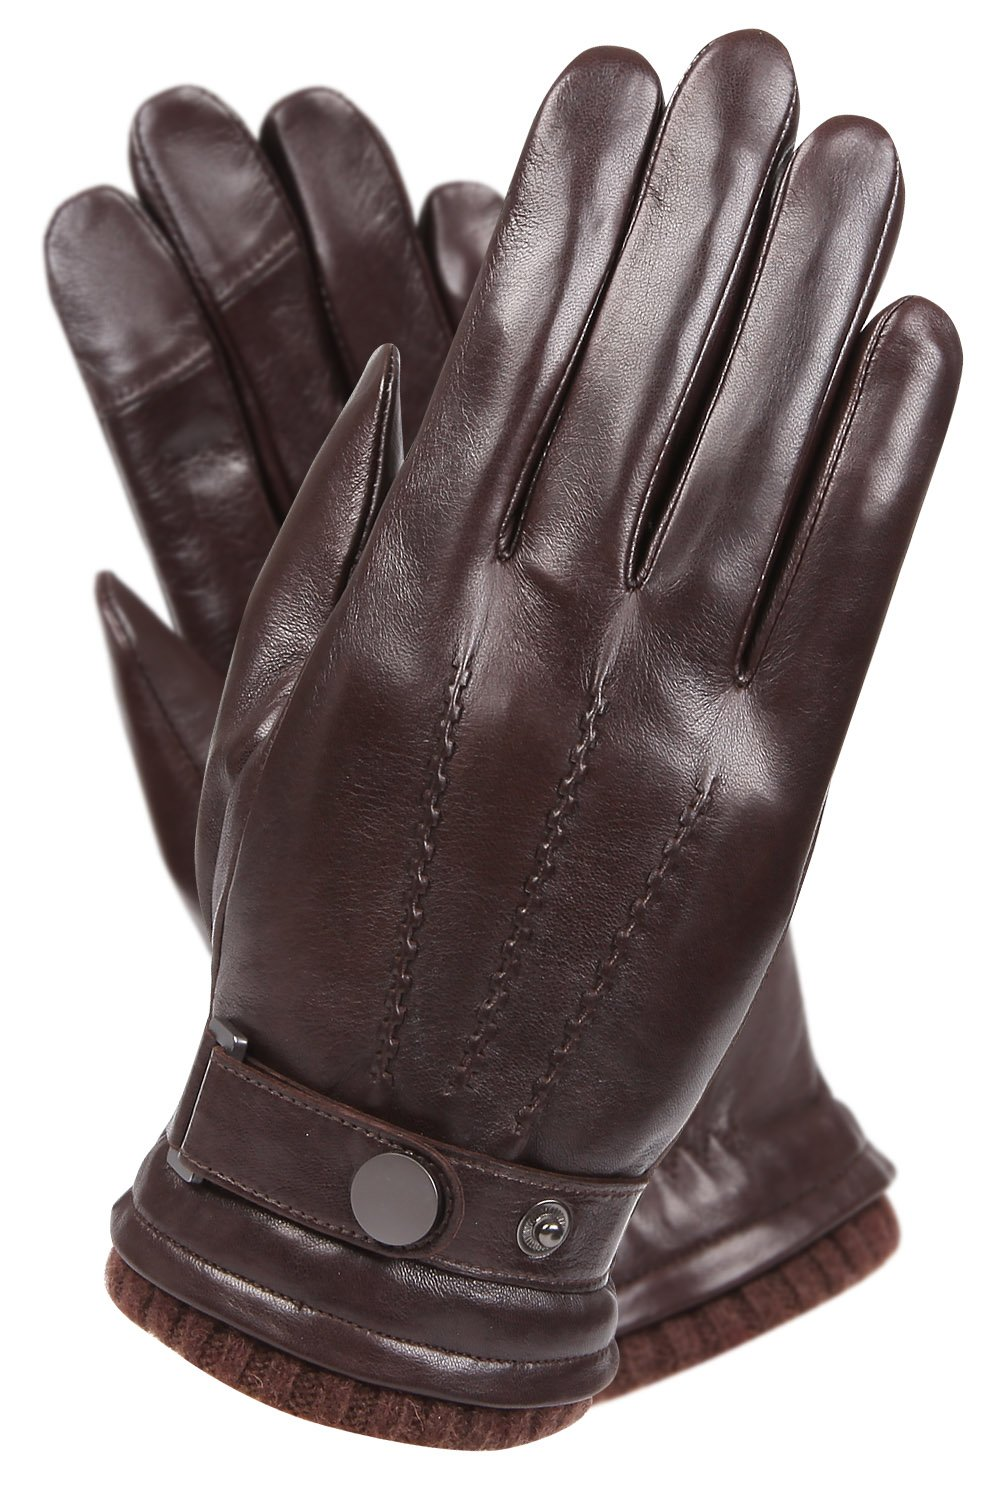 Mens Luxury Touchscreen Italian Nappa Genuine Leather Winter Warm Gloves for Texting Driving Cashmere Lining Blend Cuff